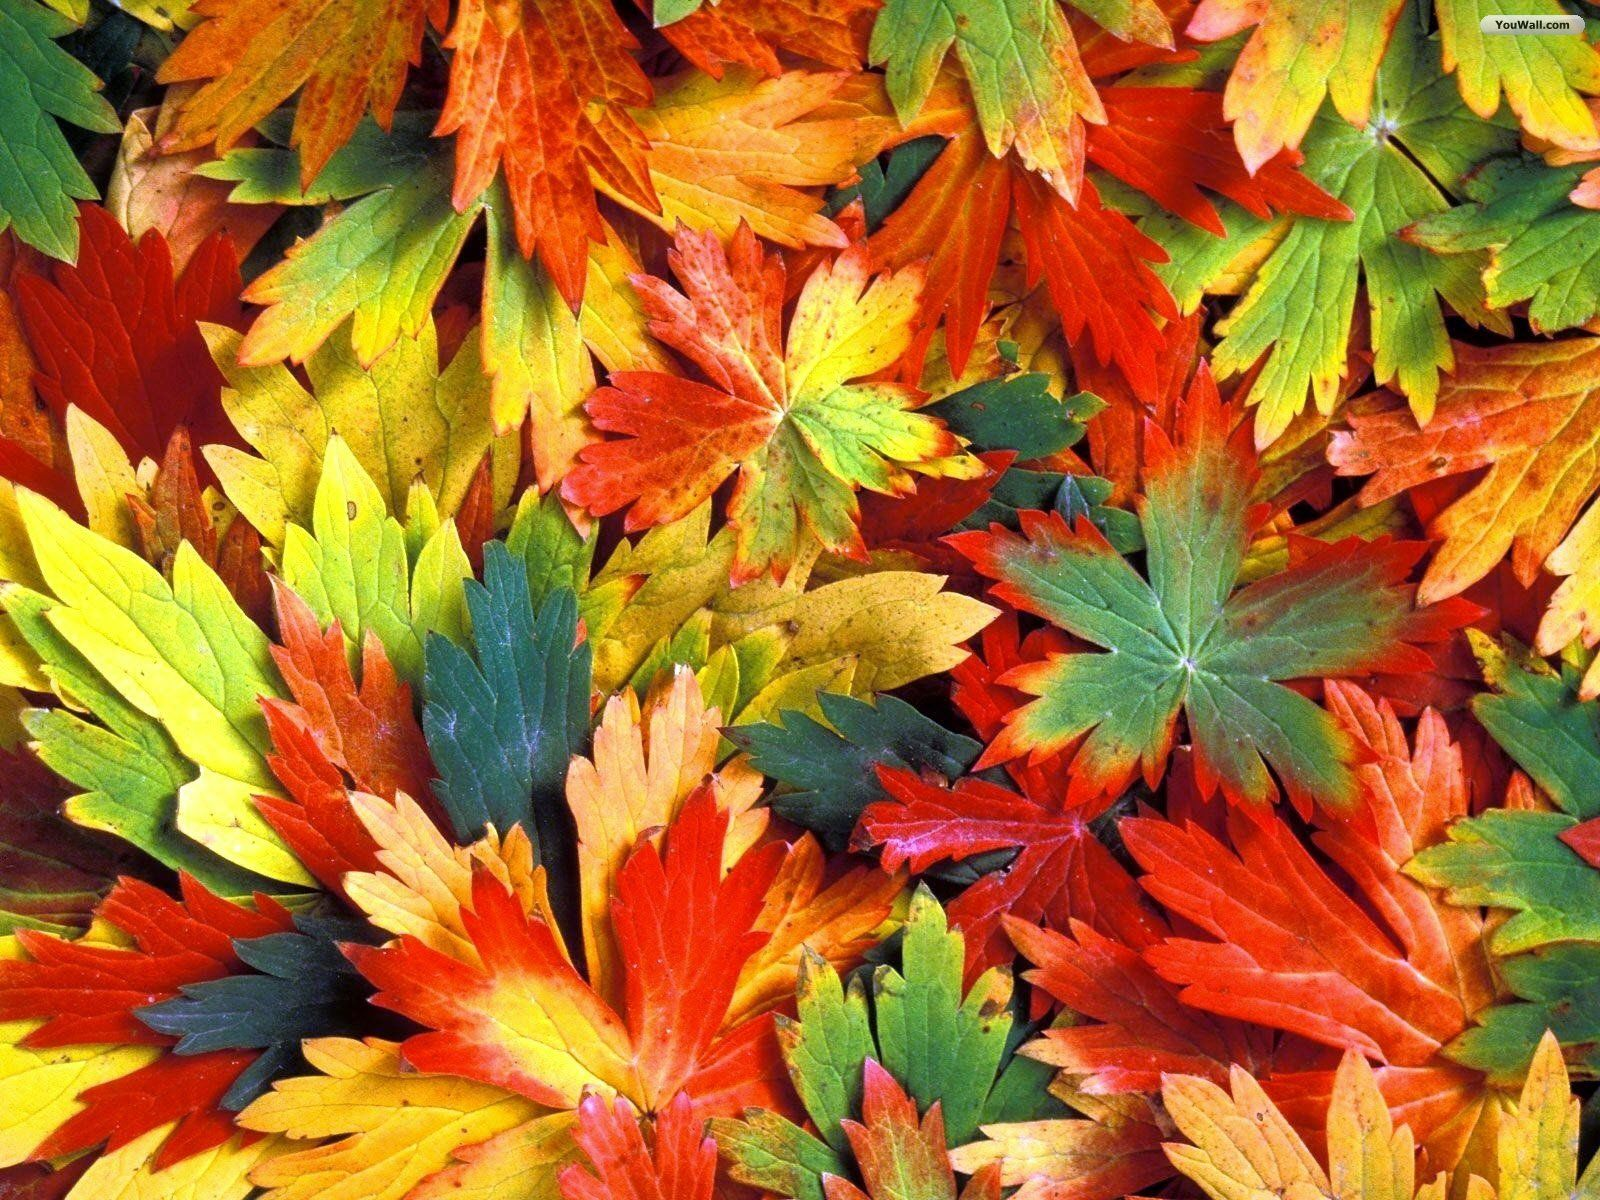 Autumn Leaves HD Wallpaper Wide Free Download #c60 1600x1200 px 478.88 KB